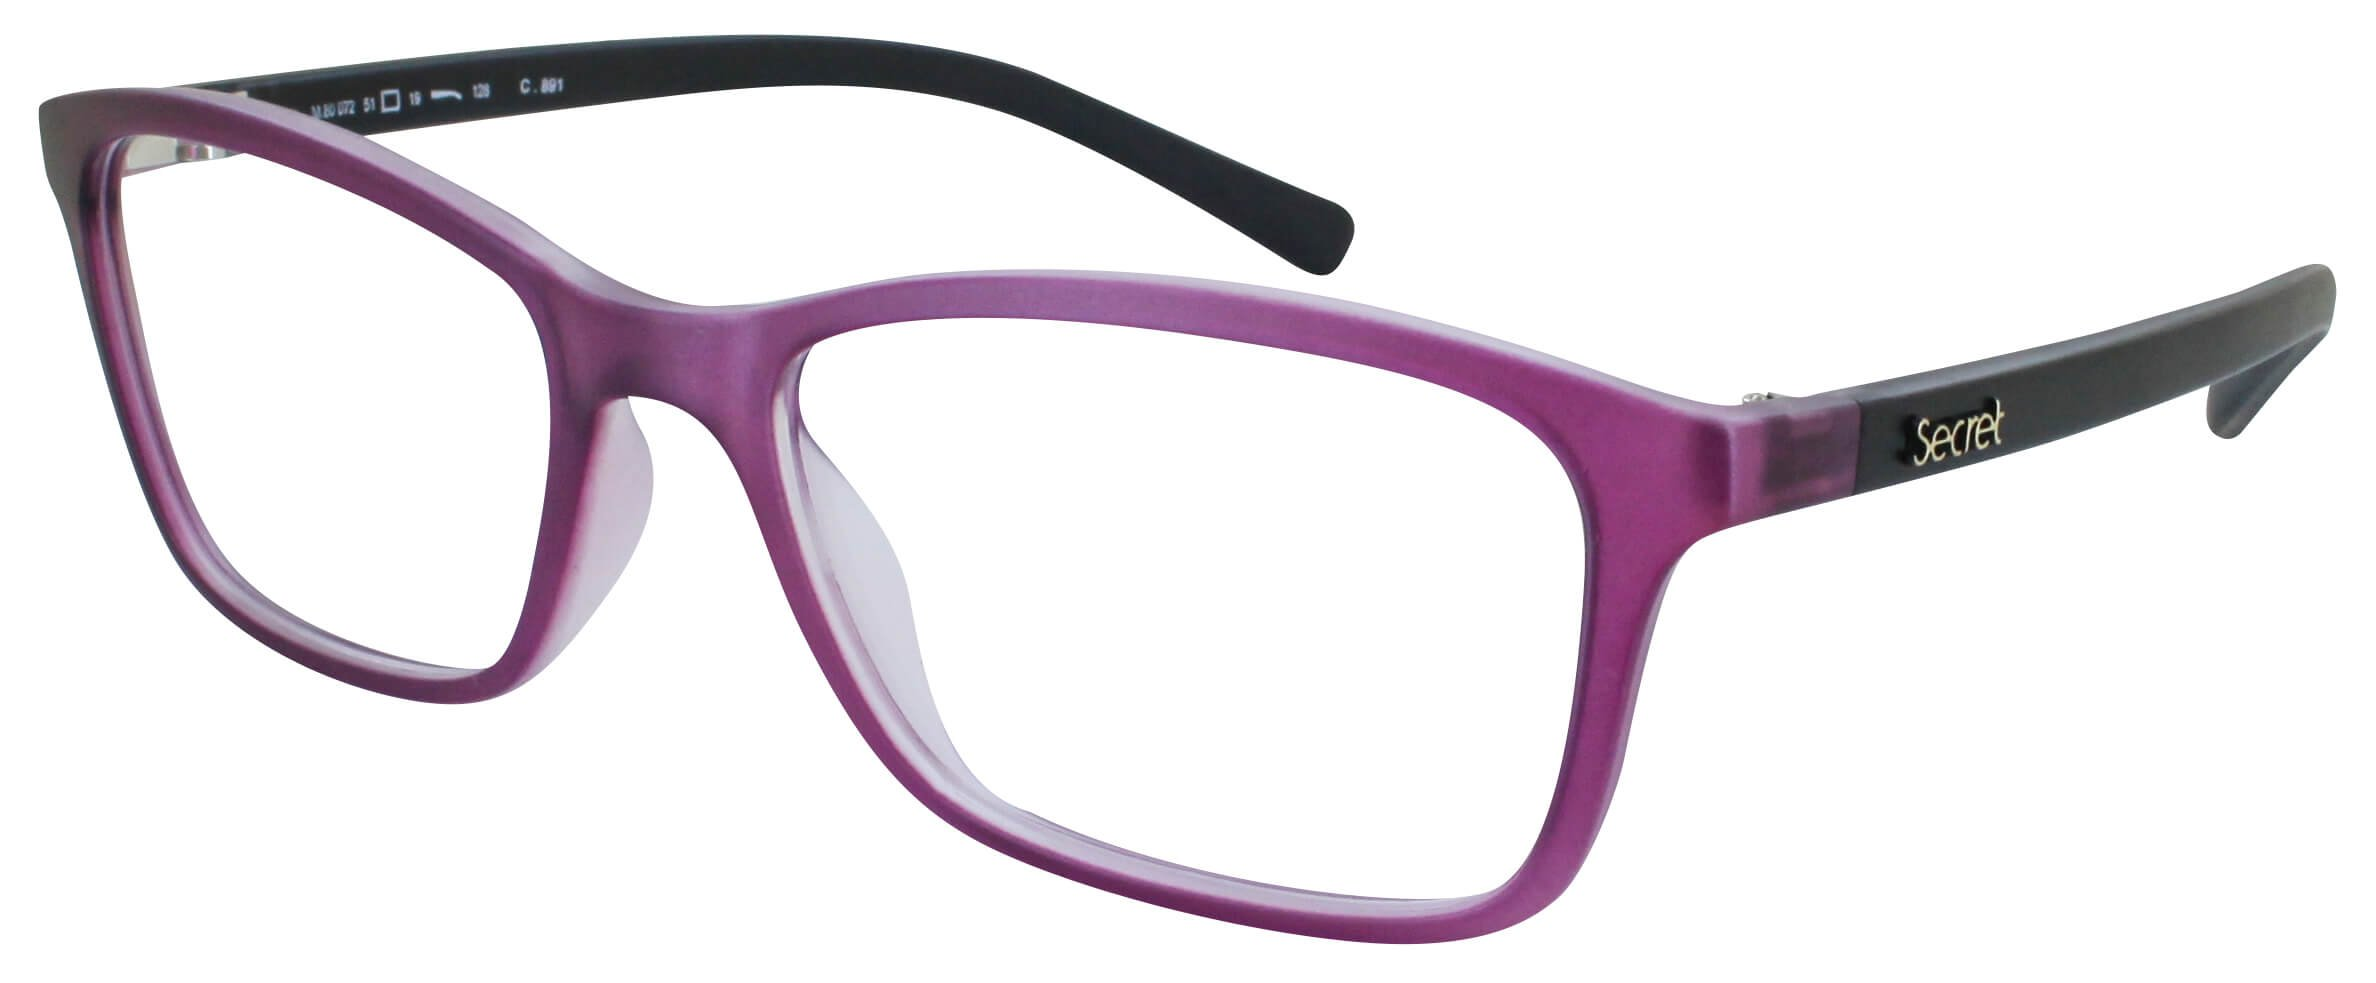 SECRET GRILAMID 80072 M.D.PURPLE/BLACK